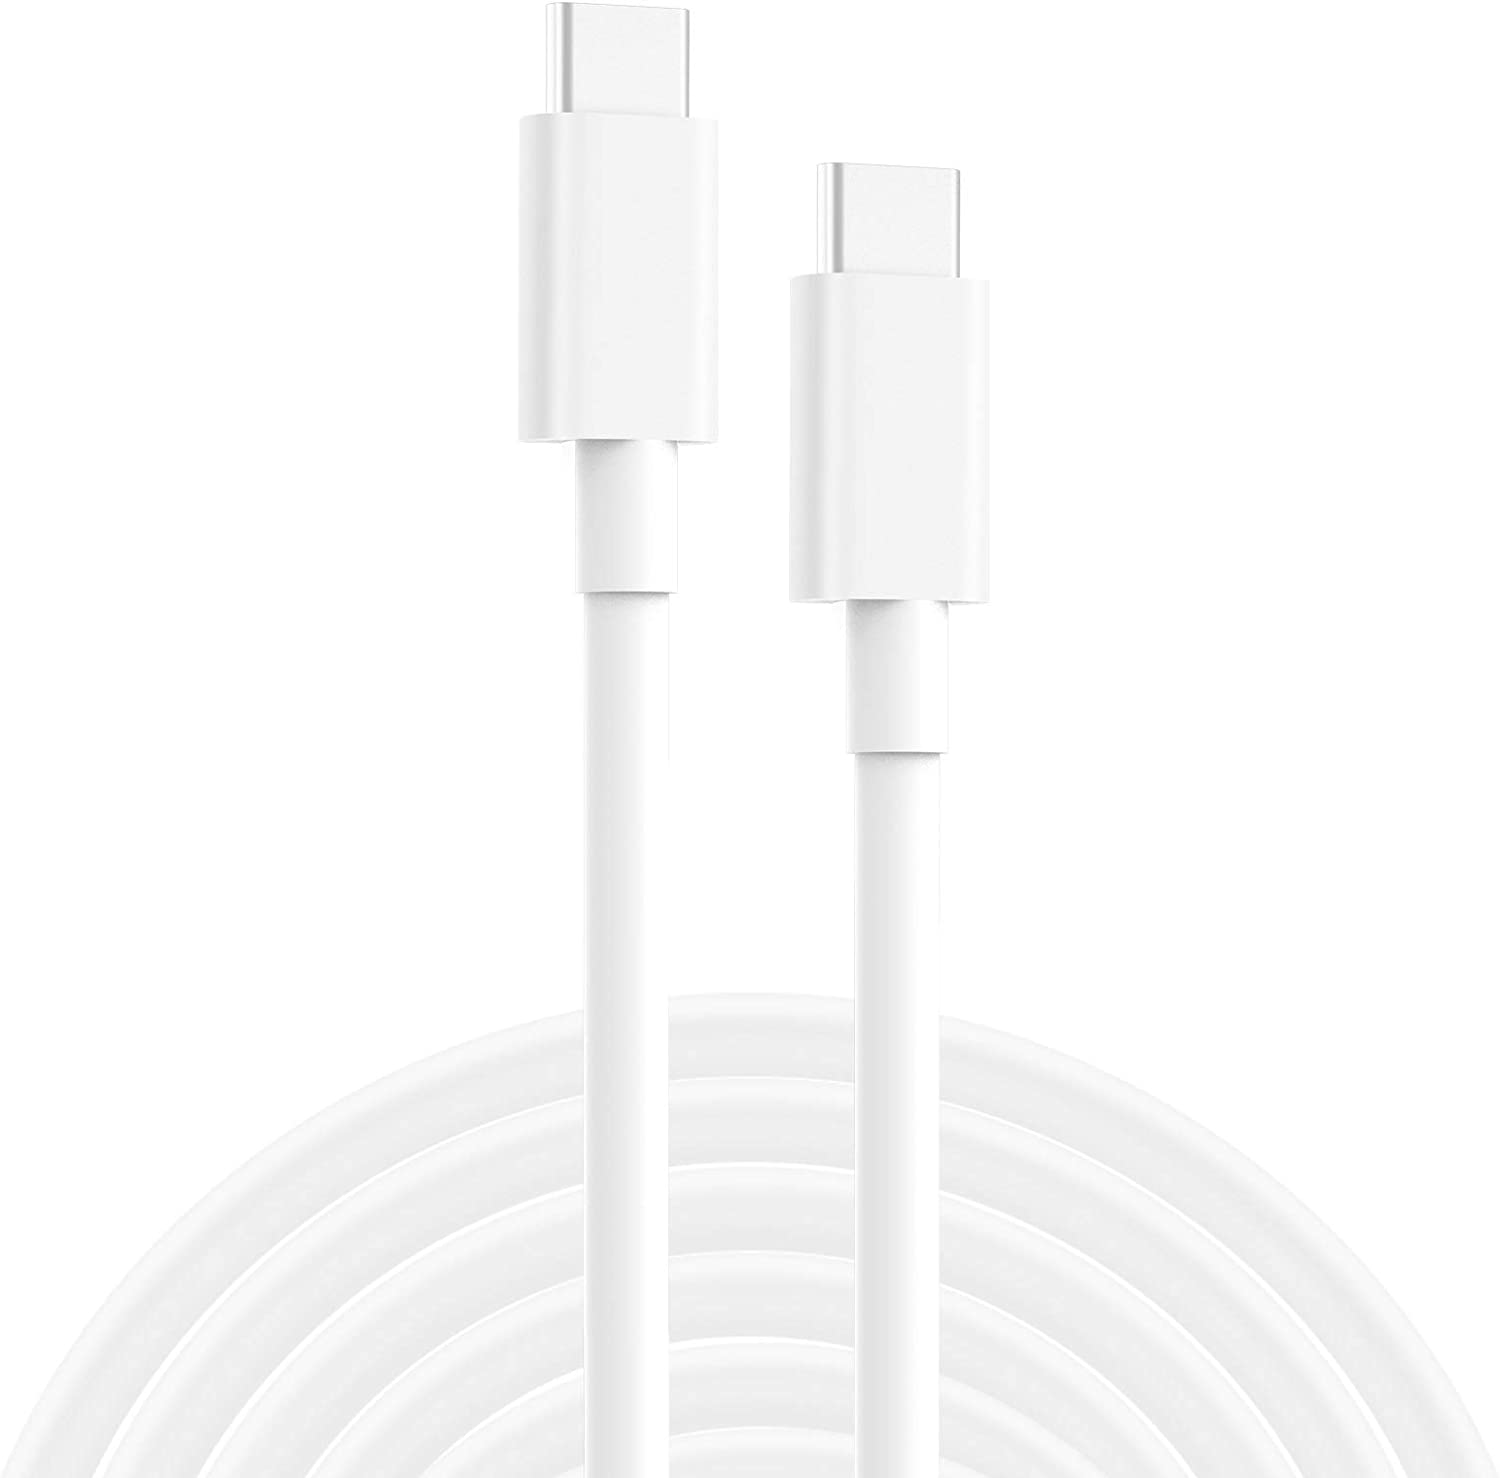 2 Pack USB C to USB C Charging Cable, Cord Replacement for MacBook Pro, MacBook 12 inch, New MacBook Air, 2020/2018 iPad Pro 12.9, 11, Google Pixel 2/3/4 XL, All PD USB C Charger, USB-IF, 6.6ft